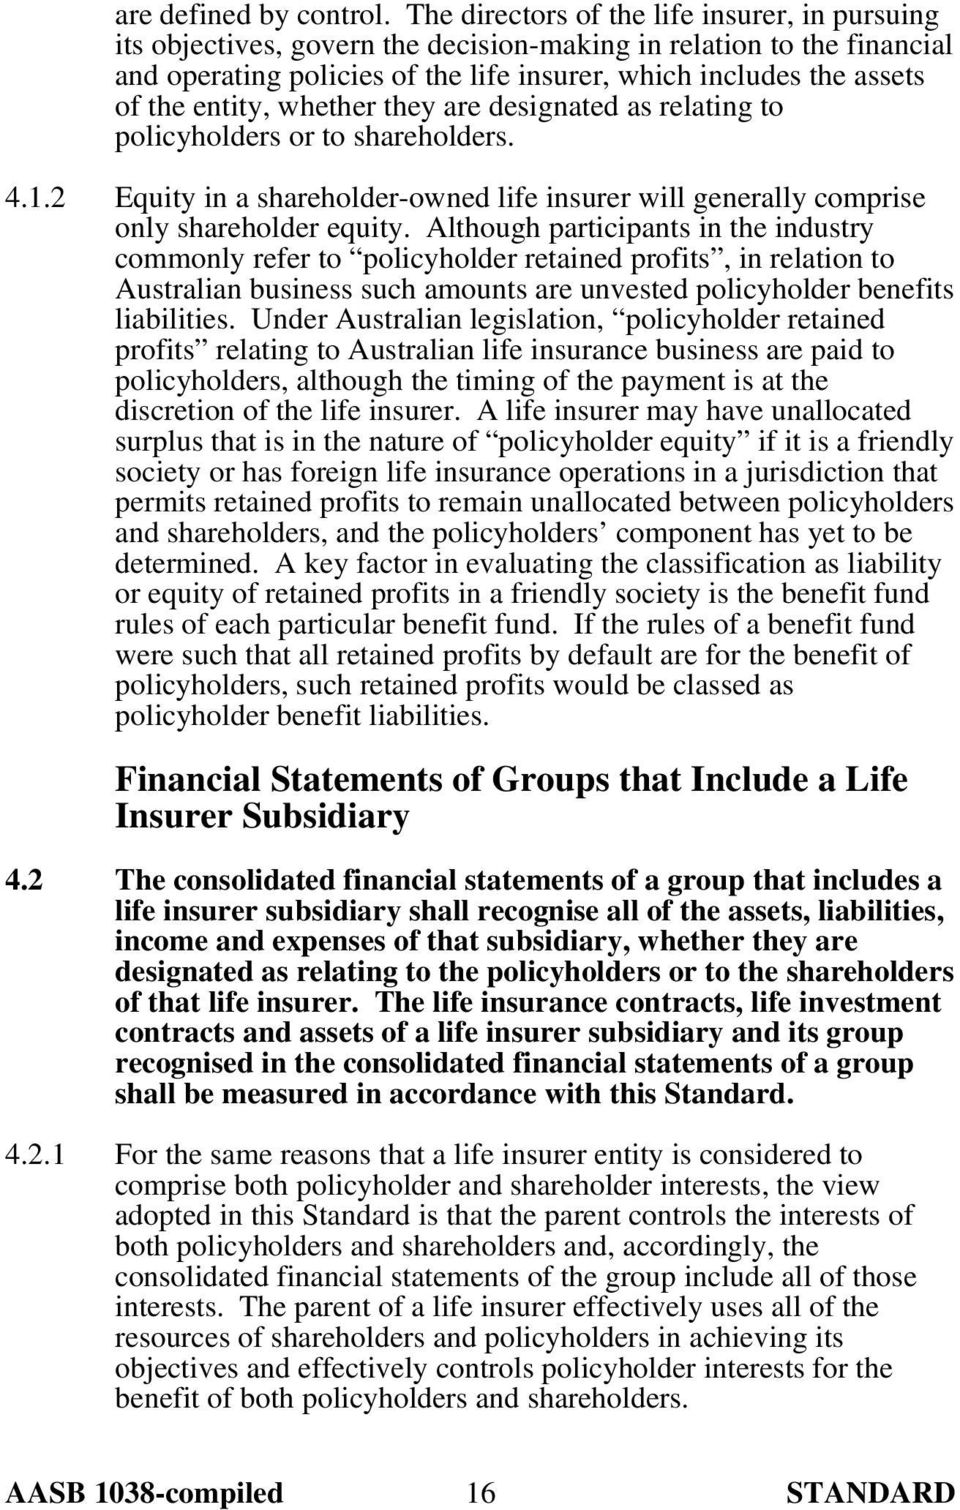 entity, whether they are designated as relating to policyholders or to shareholders. 4.1.2 Equity in a shareholder-owned life insurer will generally comprise only shareholder equity.